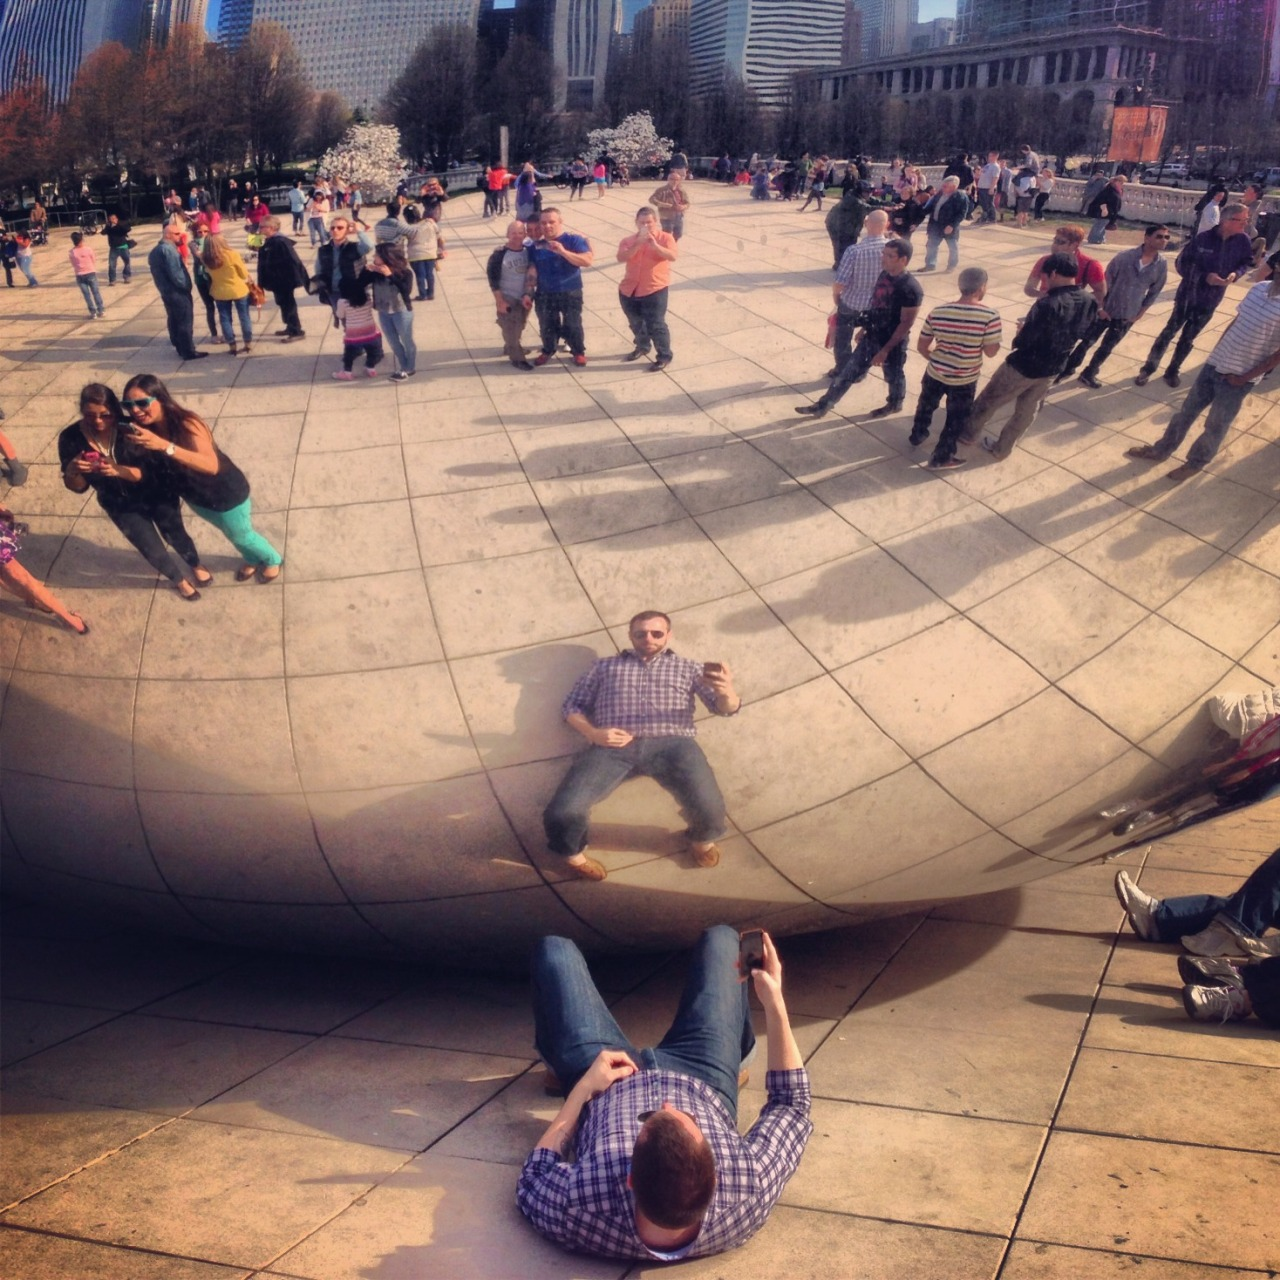 A friend captured my attempt at taking a 'unique' picture at the bean last weekend.  Instead they all just made it look like I was doing something obscene in public.